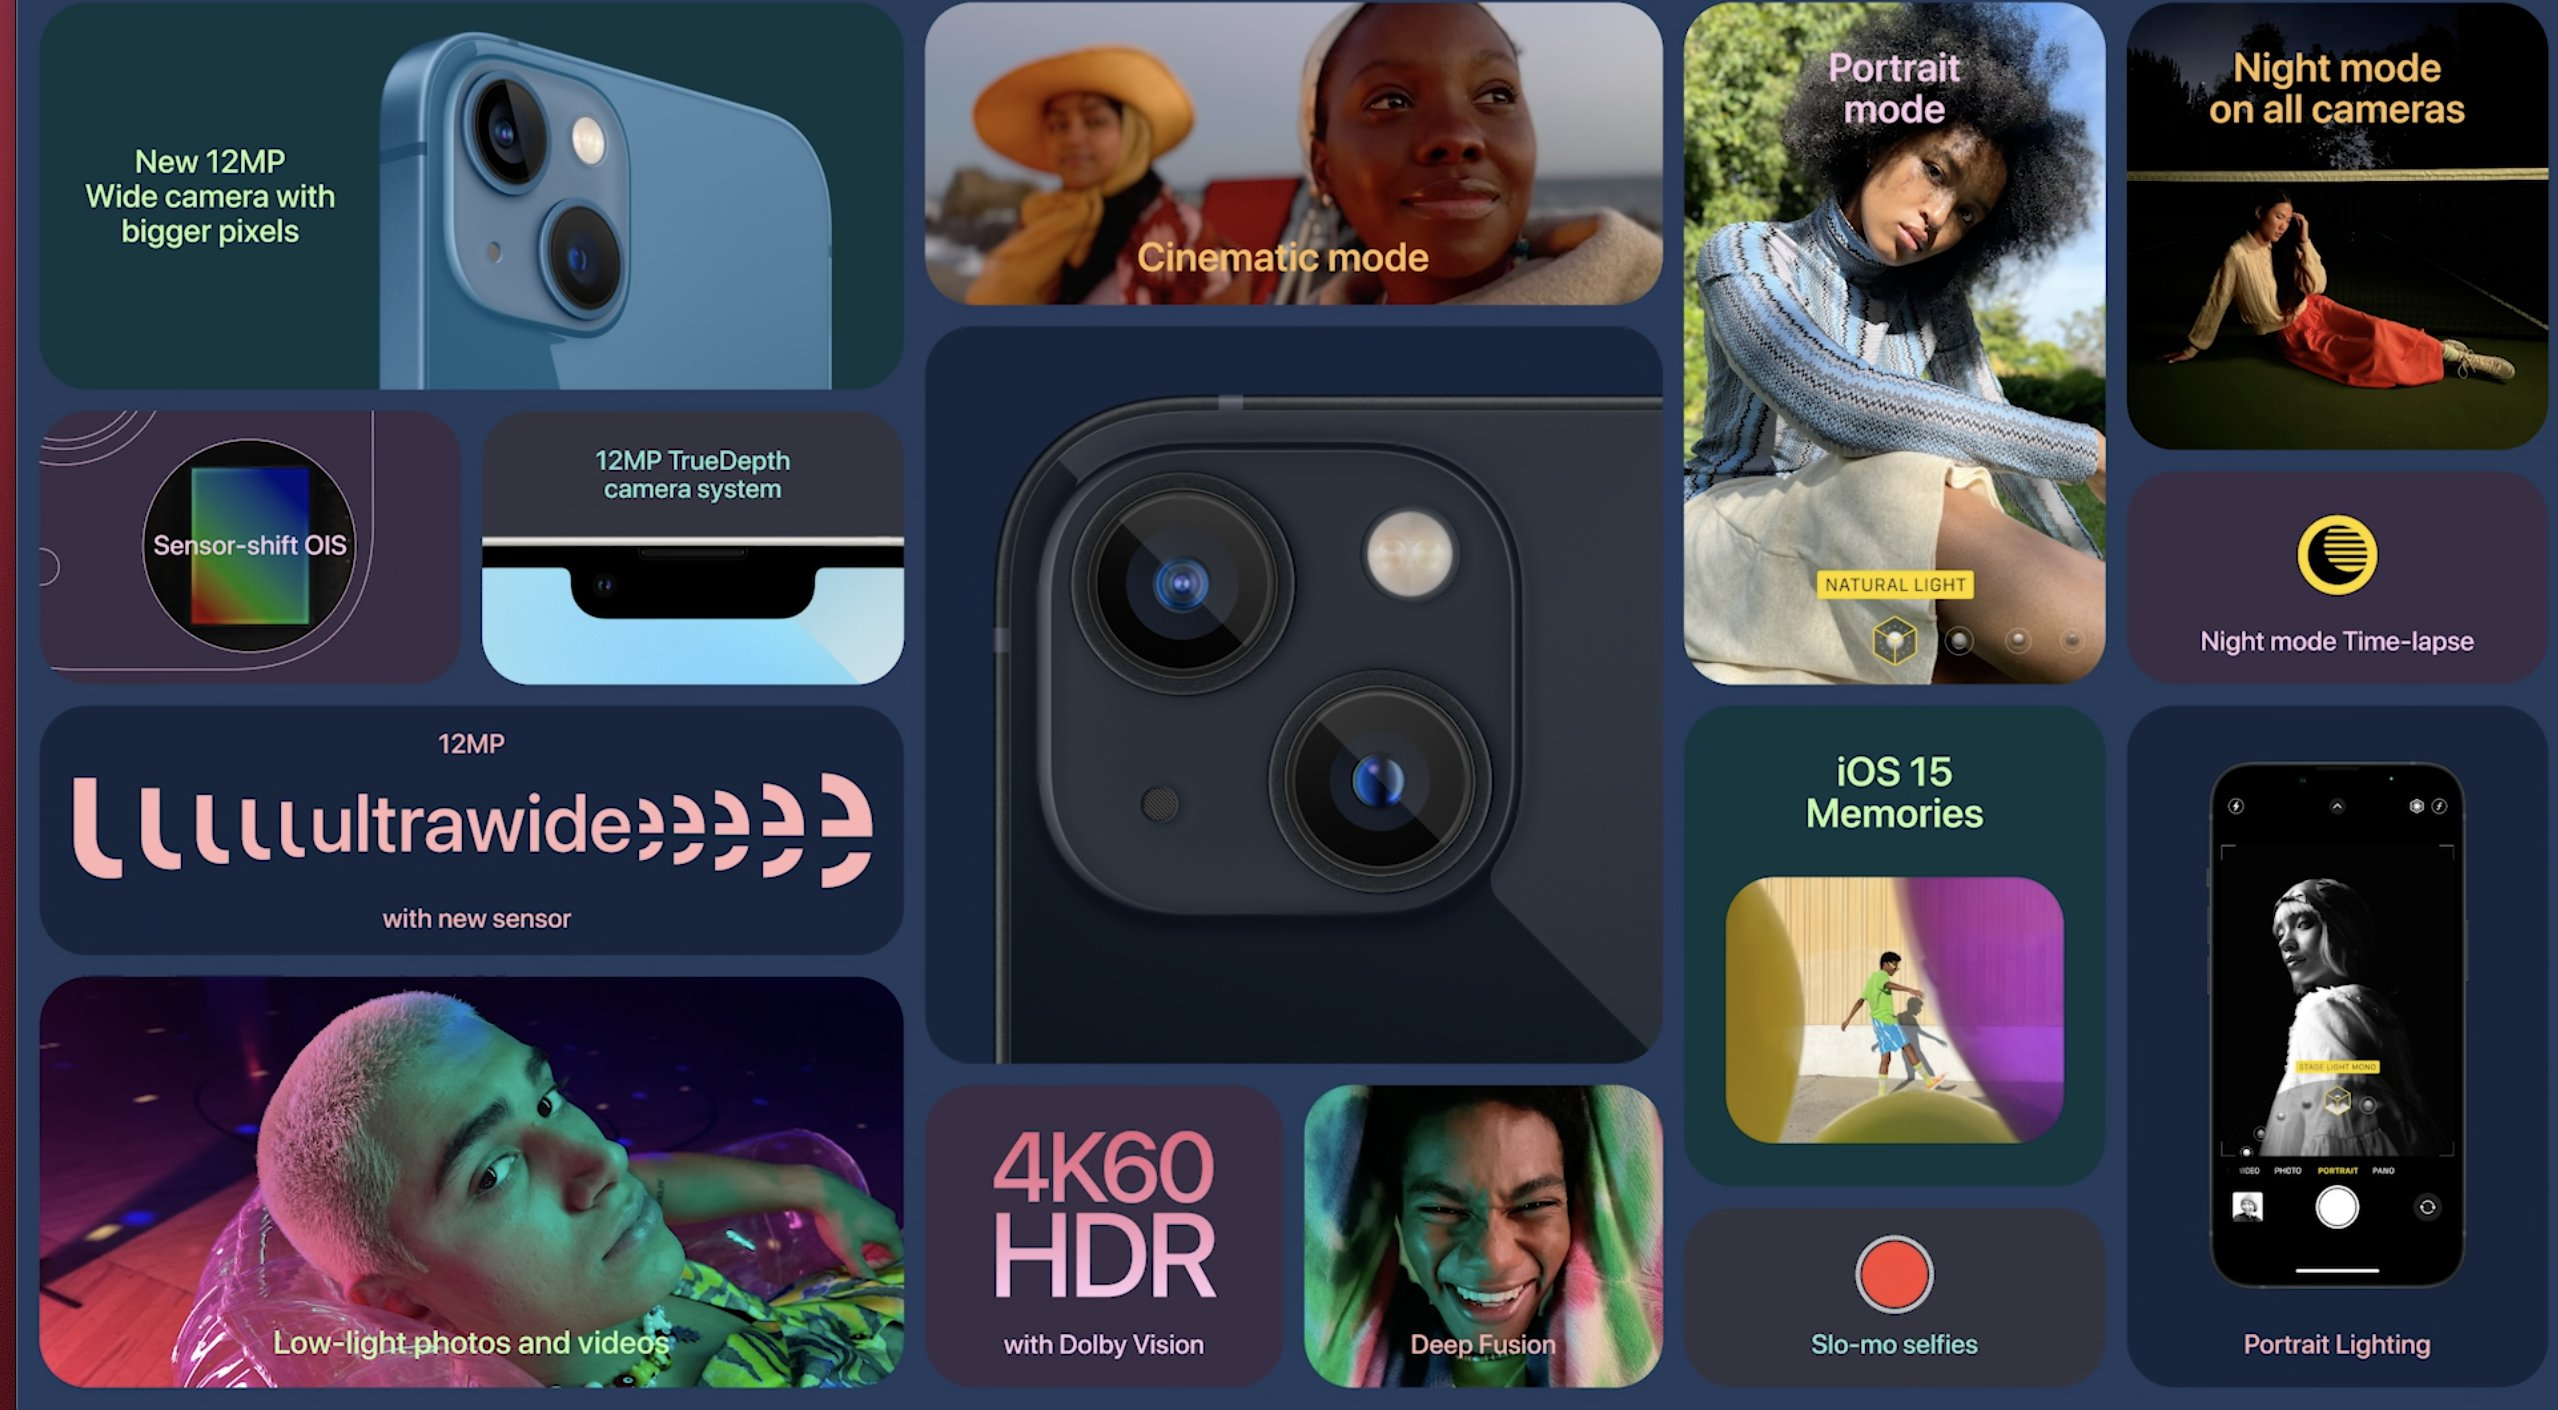 E Q4k0AX0Awy7pE?format=jpg&name=4096x4096 - Apple announces iPhone 13 with a smaller notch